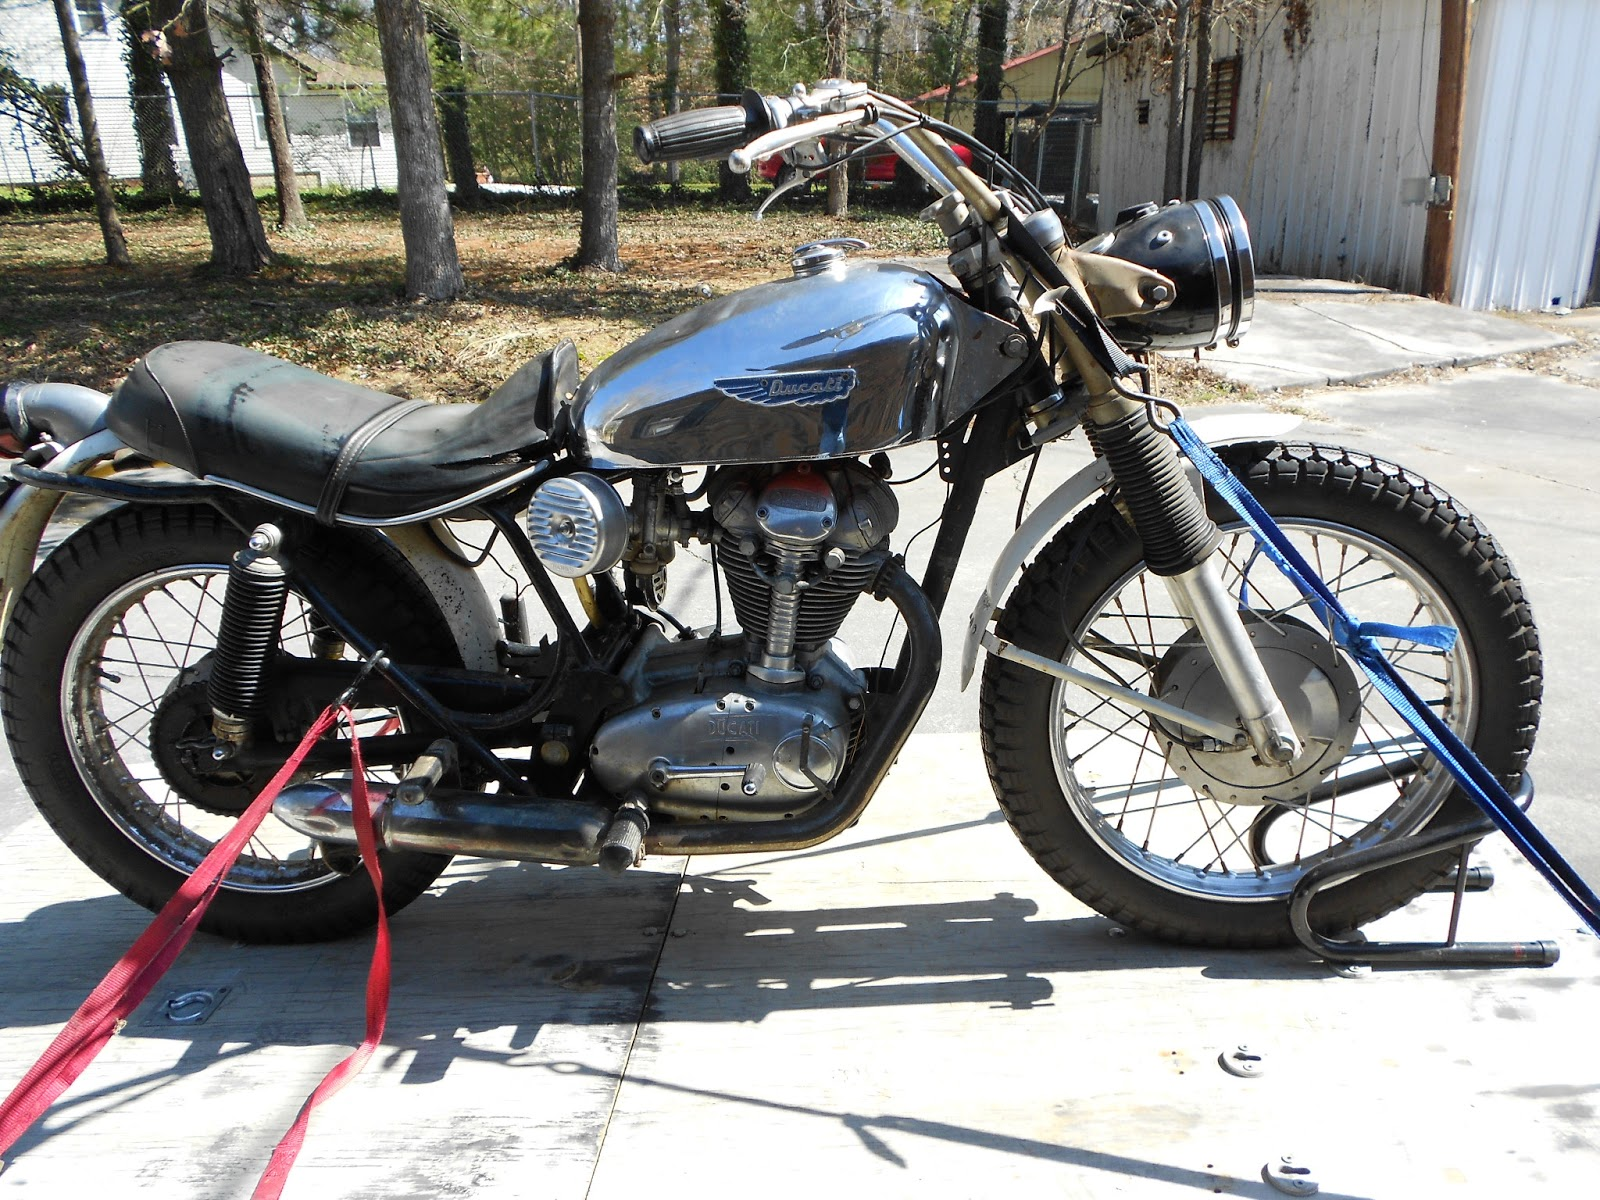 1969 Ducati Scrambler Restoration 250 Wiring Diagram Long Story Short We Loaded One Of The Scramblers Up Went To His Bank Arrange A Wire Transfer And Voila I Had My New Project